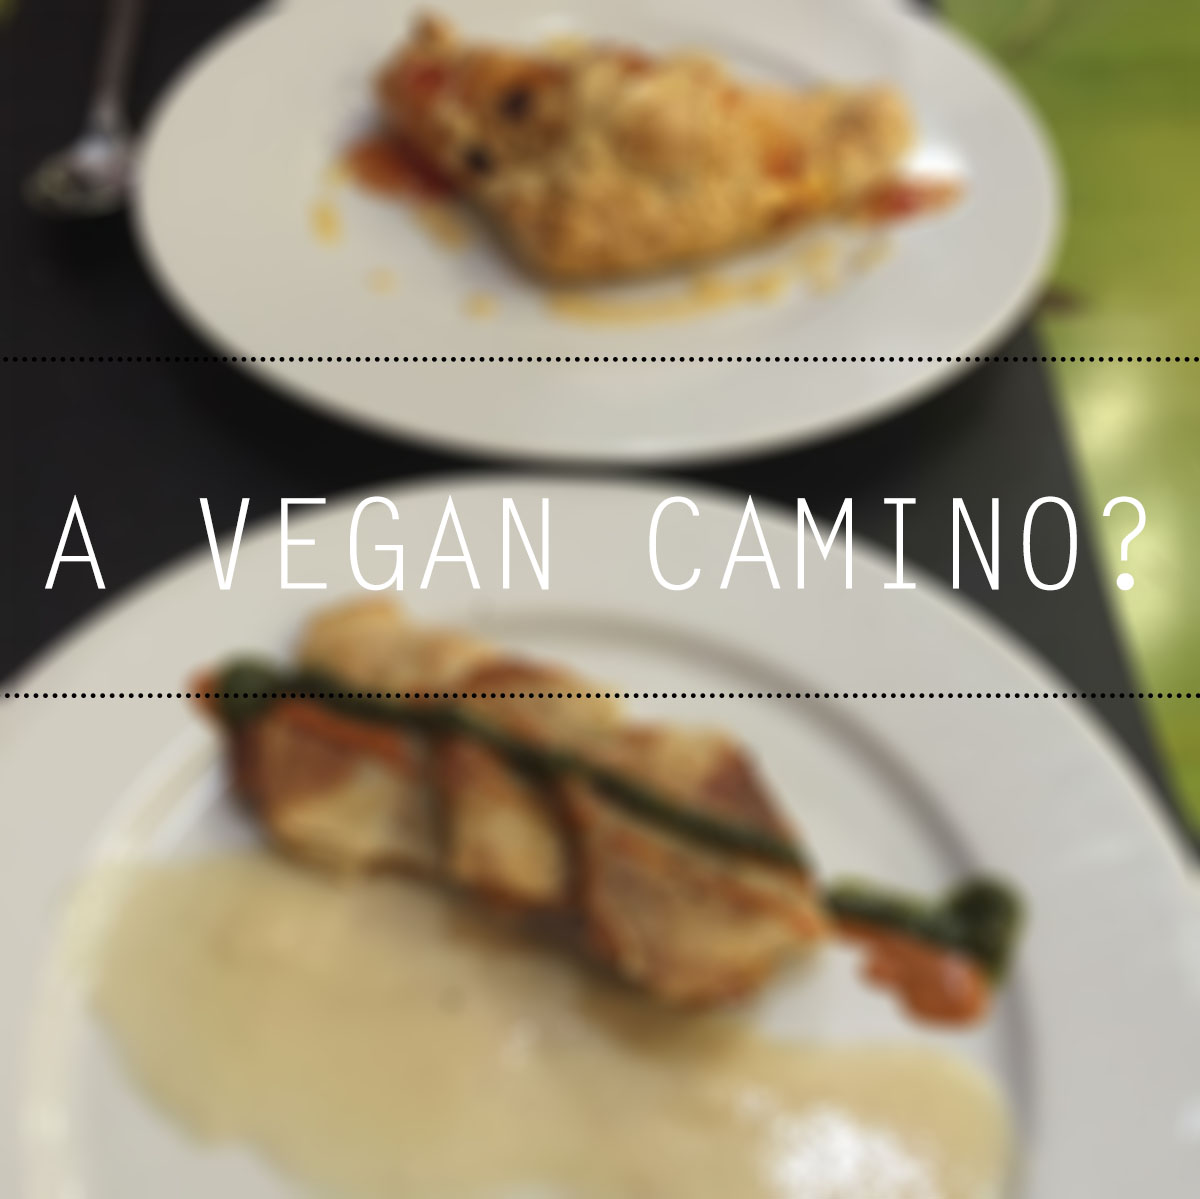 Camino Dessert Menu A Vegan Camino A Guide To Surviving The Camino As A Vegan